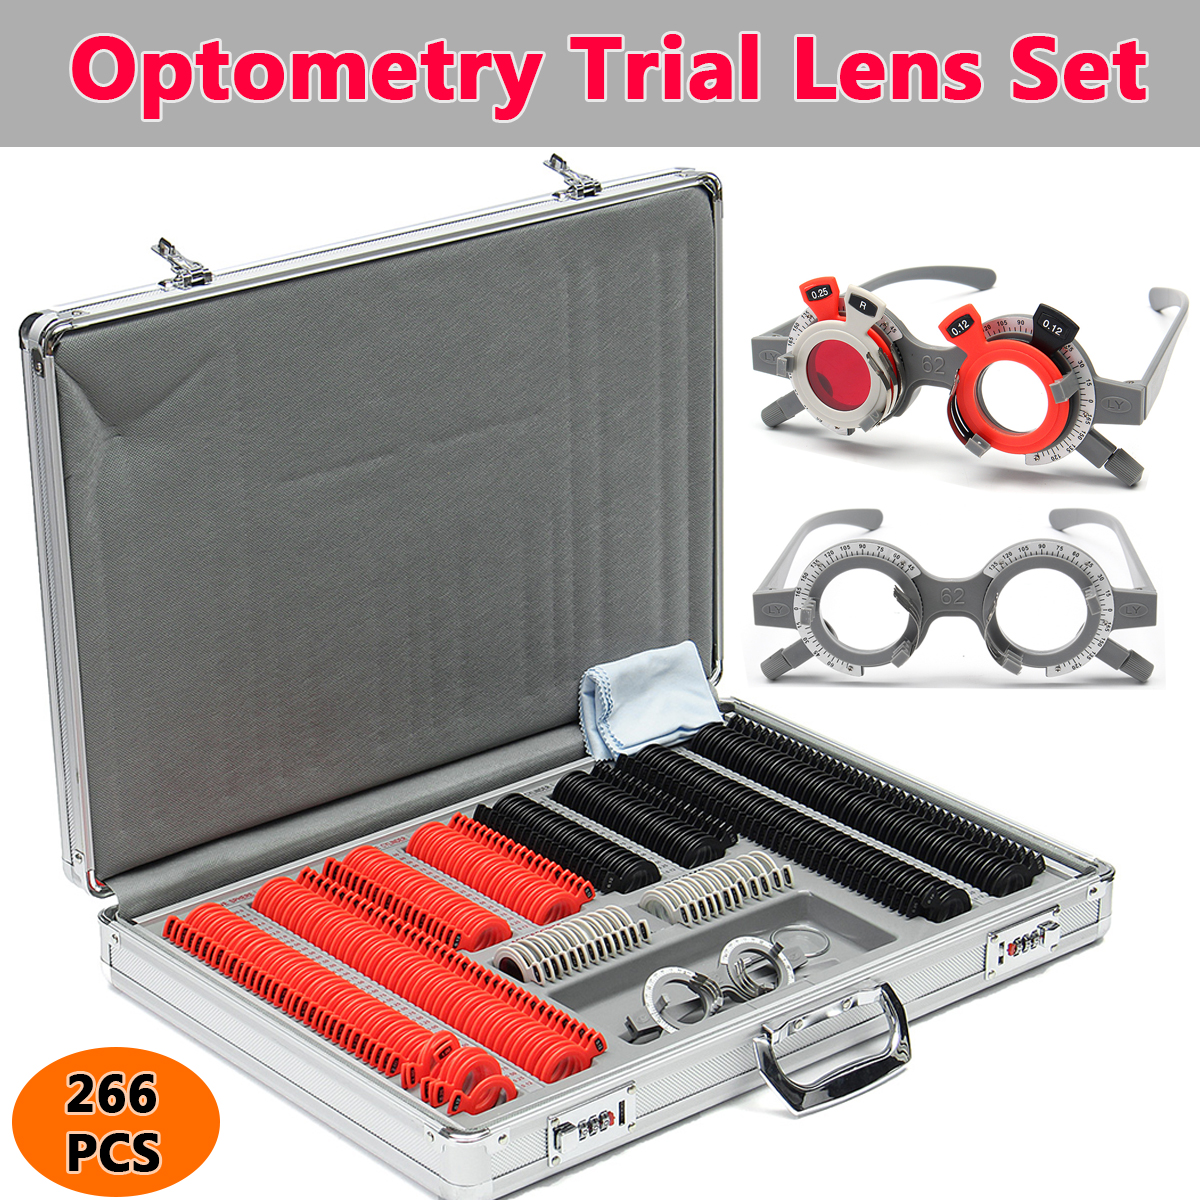 266 Pcs Trial Lens Set Optical Lens Optometry Rim Case Evidence Box Aluminum Rim Kit Optometry Test Trial Frame